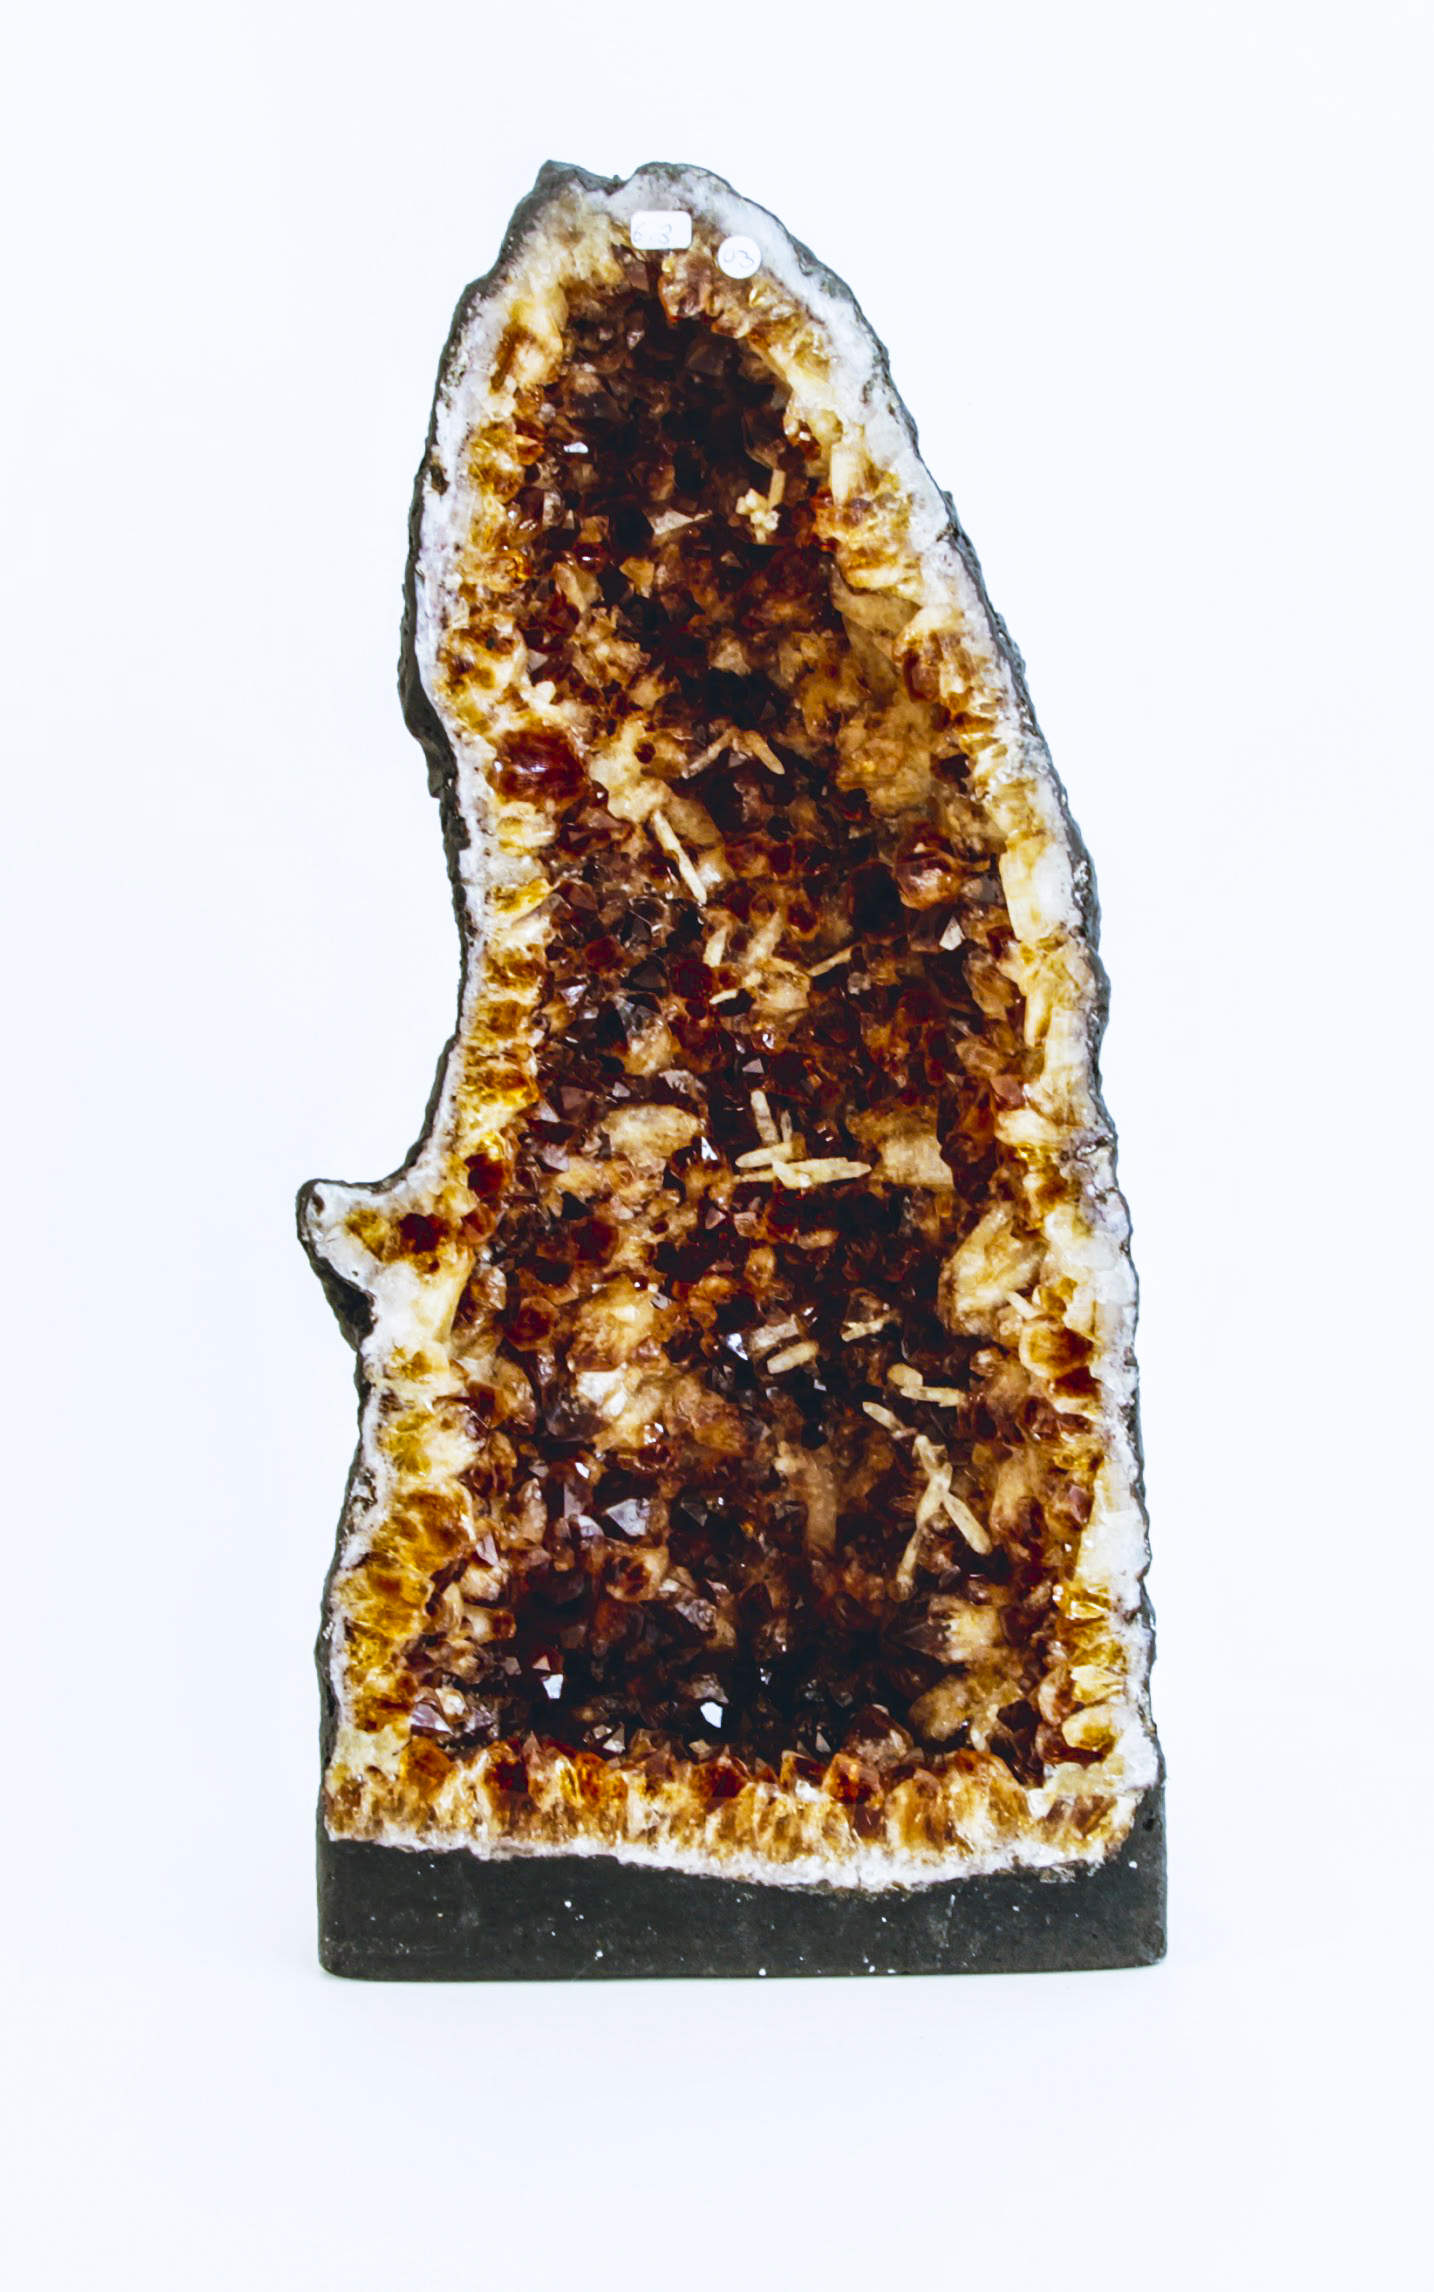 Citrine Geode with Calcite 6.3 kilos